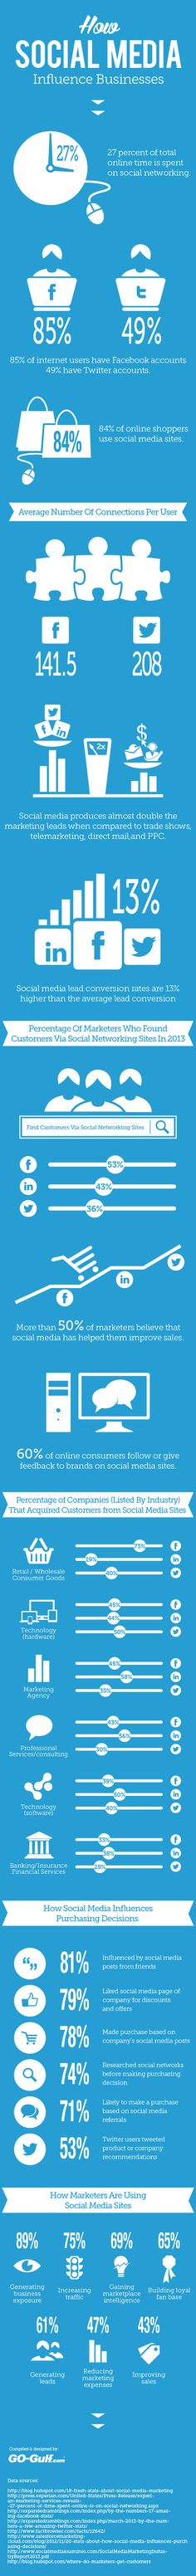 """Check out our latest infographic """"How Social Media Influence Businesses"""" to have better understanding of the social media impact on your business and on your marketing campaigns. Marketing Trends, E-mail Marketing, Marketing Digital, Internet Marketing, Online Marketing, Social Media Marketing, Content Marketing, Marketing Dashboard, Social Media Usage"""